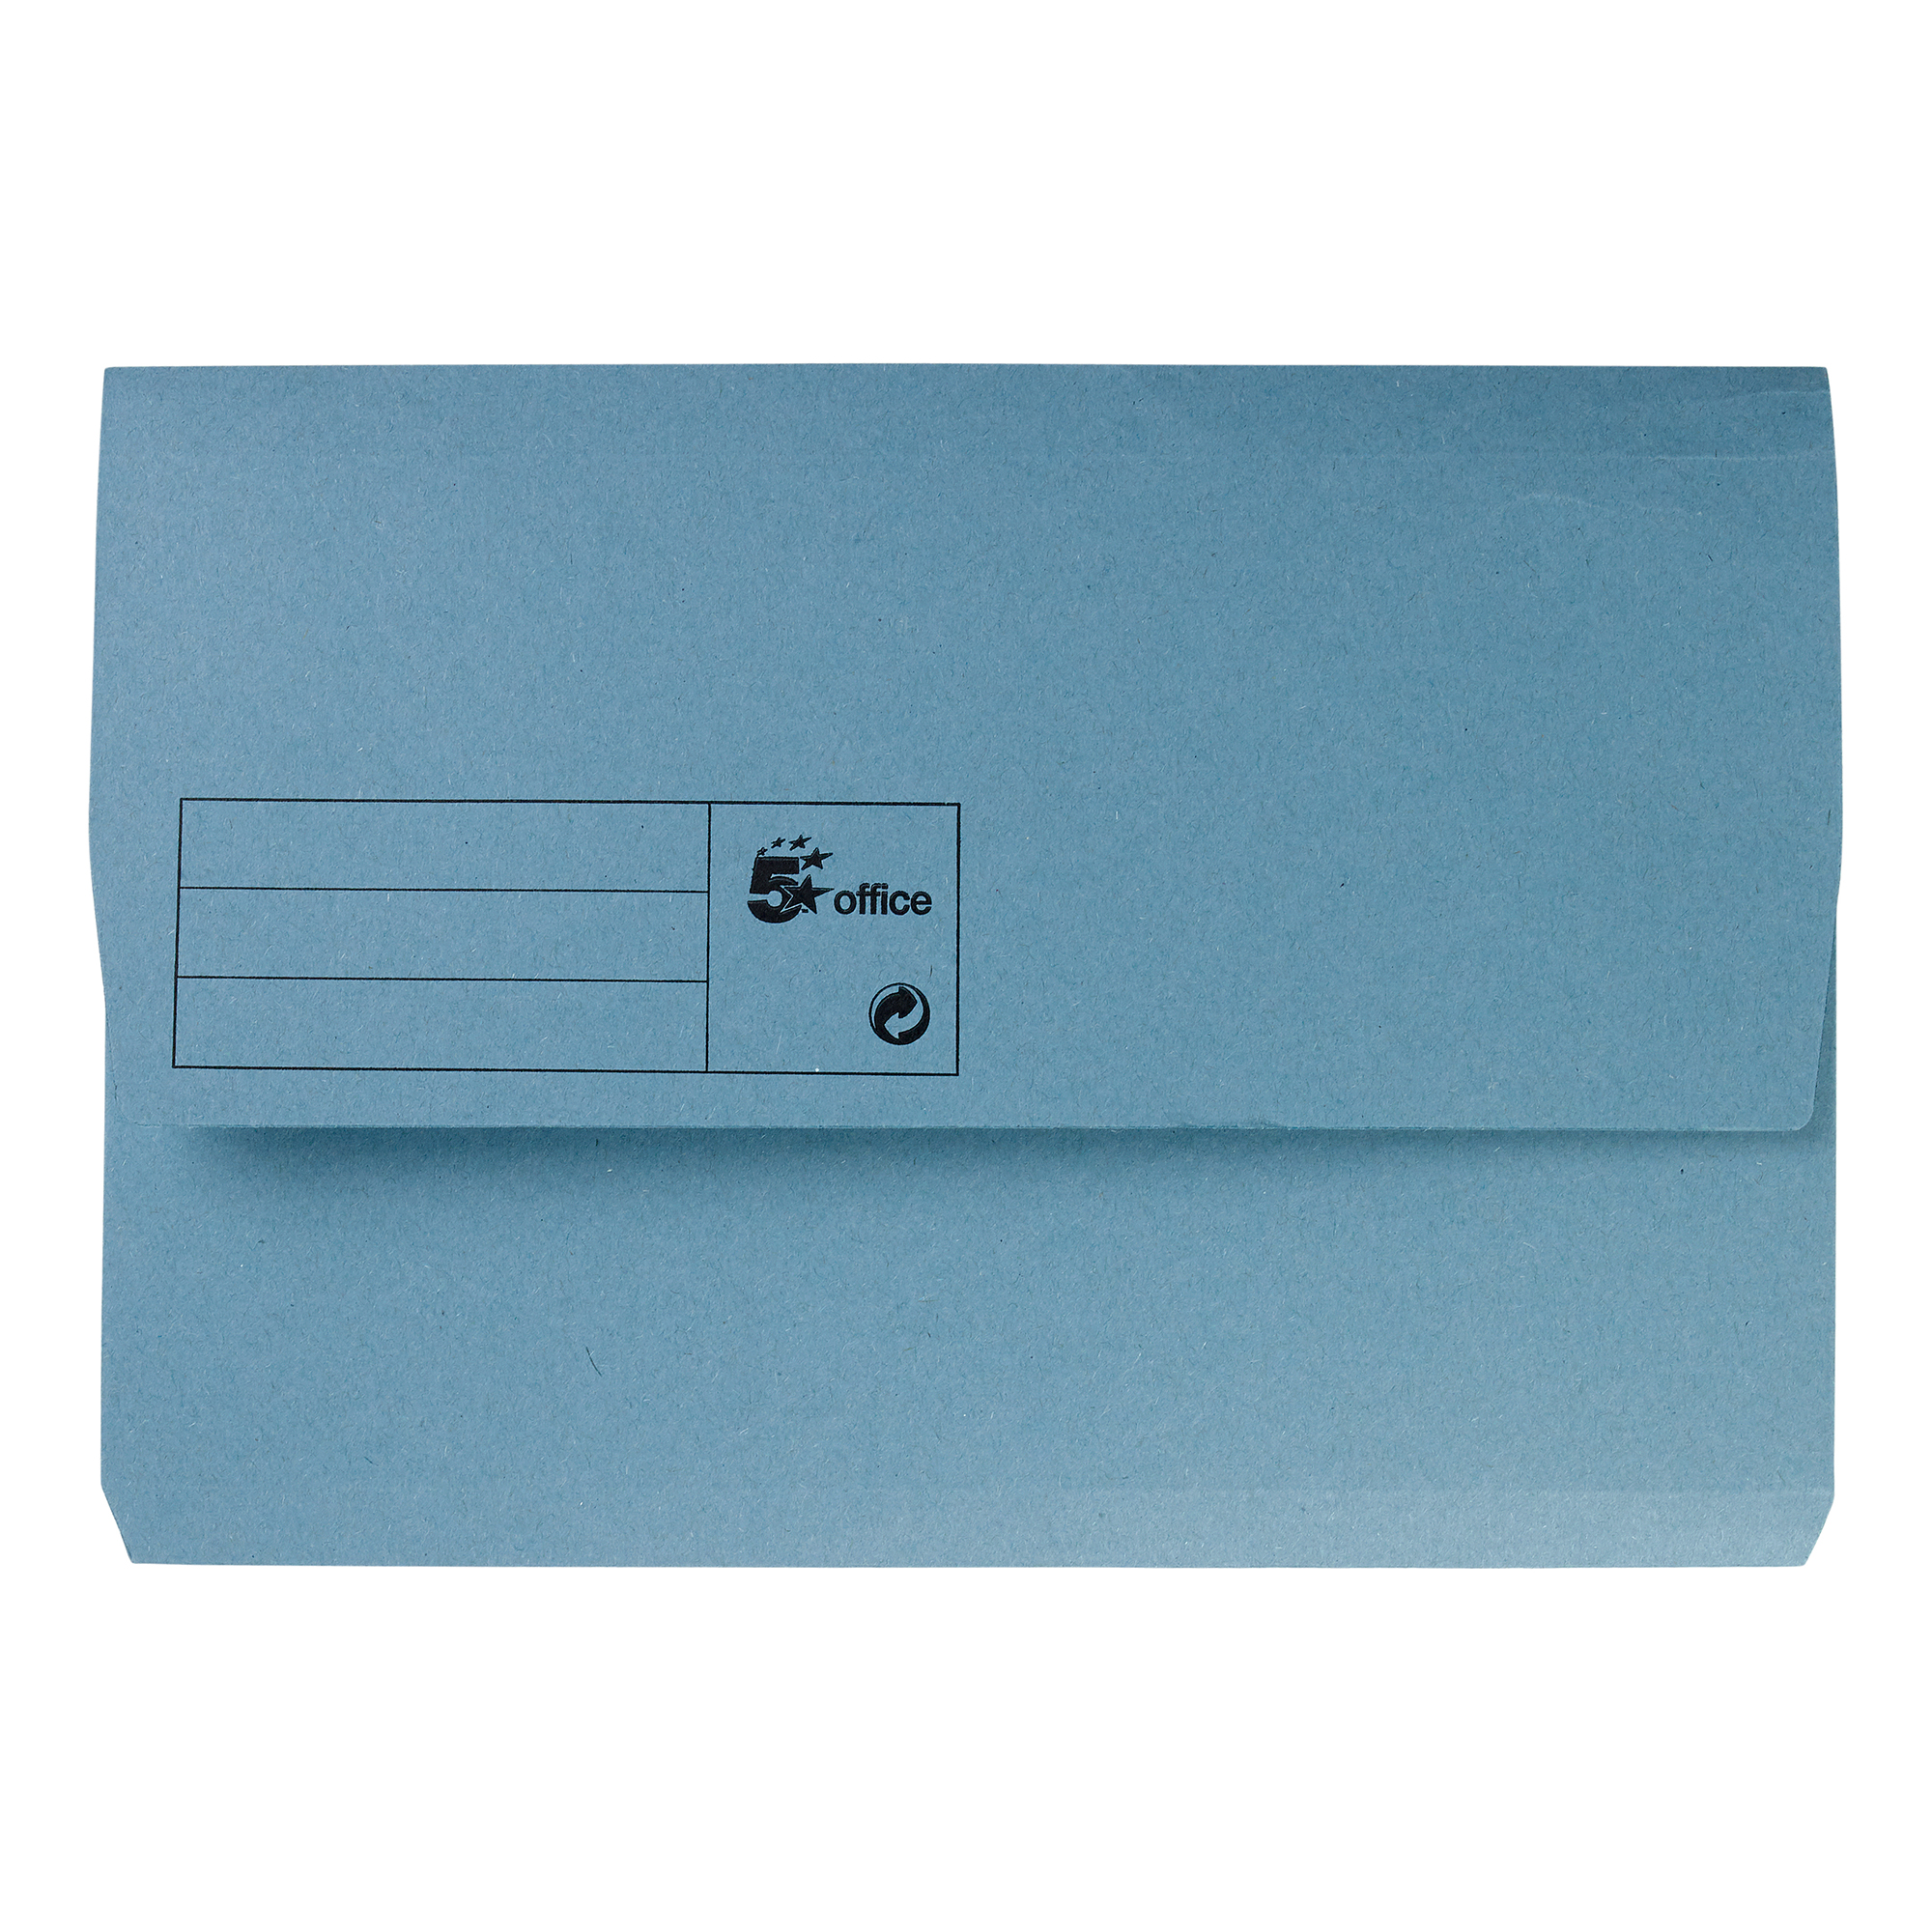 5 Star Office Document Wallet Half Flap 285gsm Recycled Capacity 32mm Foolscap Blue [Pack 50]